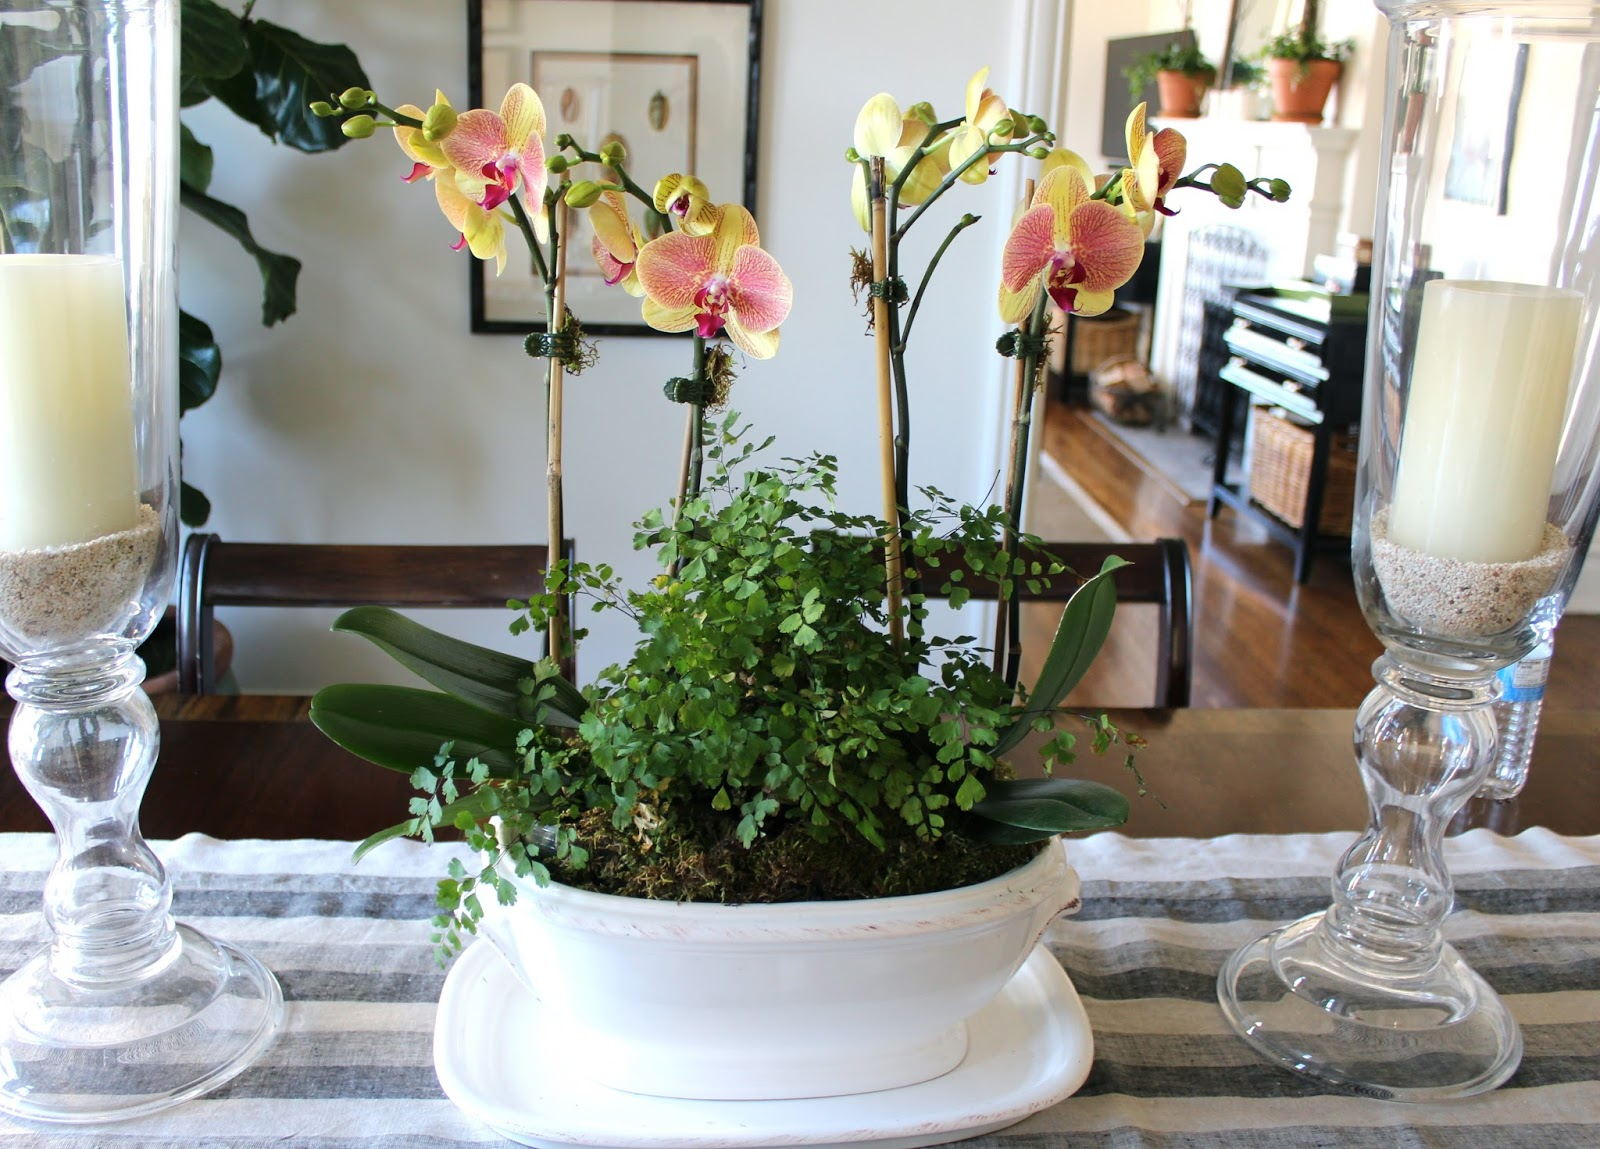 Classic • Casual • Home: Dining Room Table Centerpieces